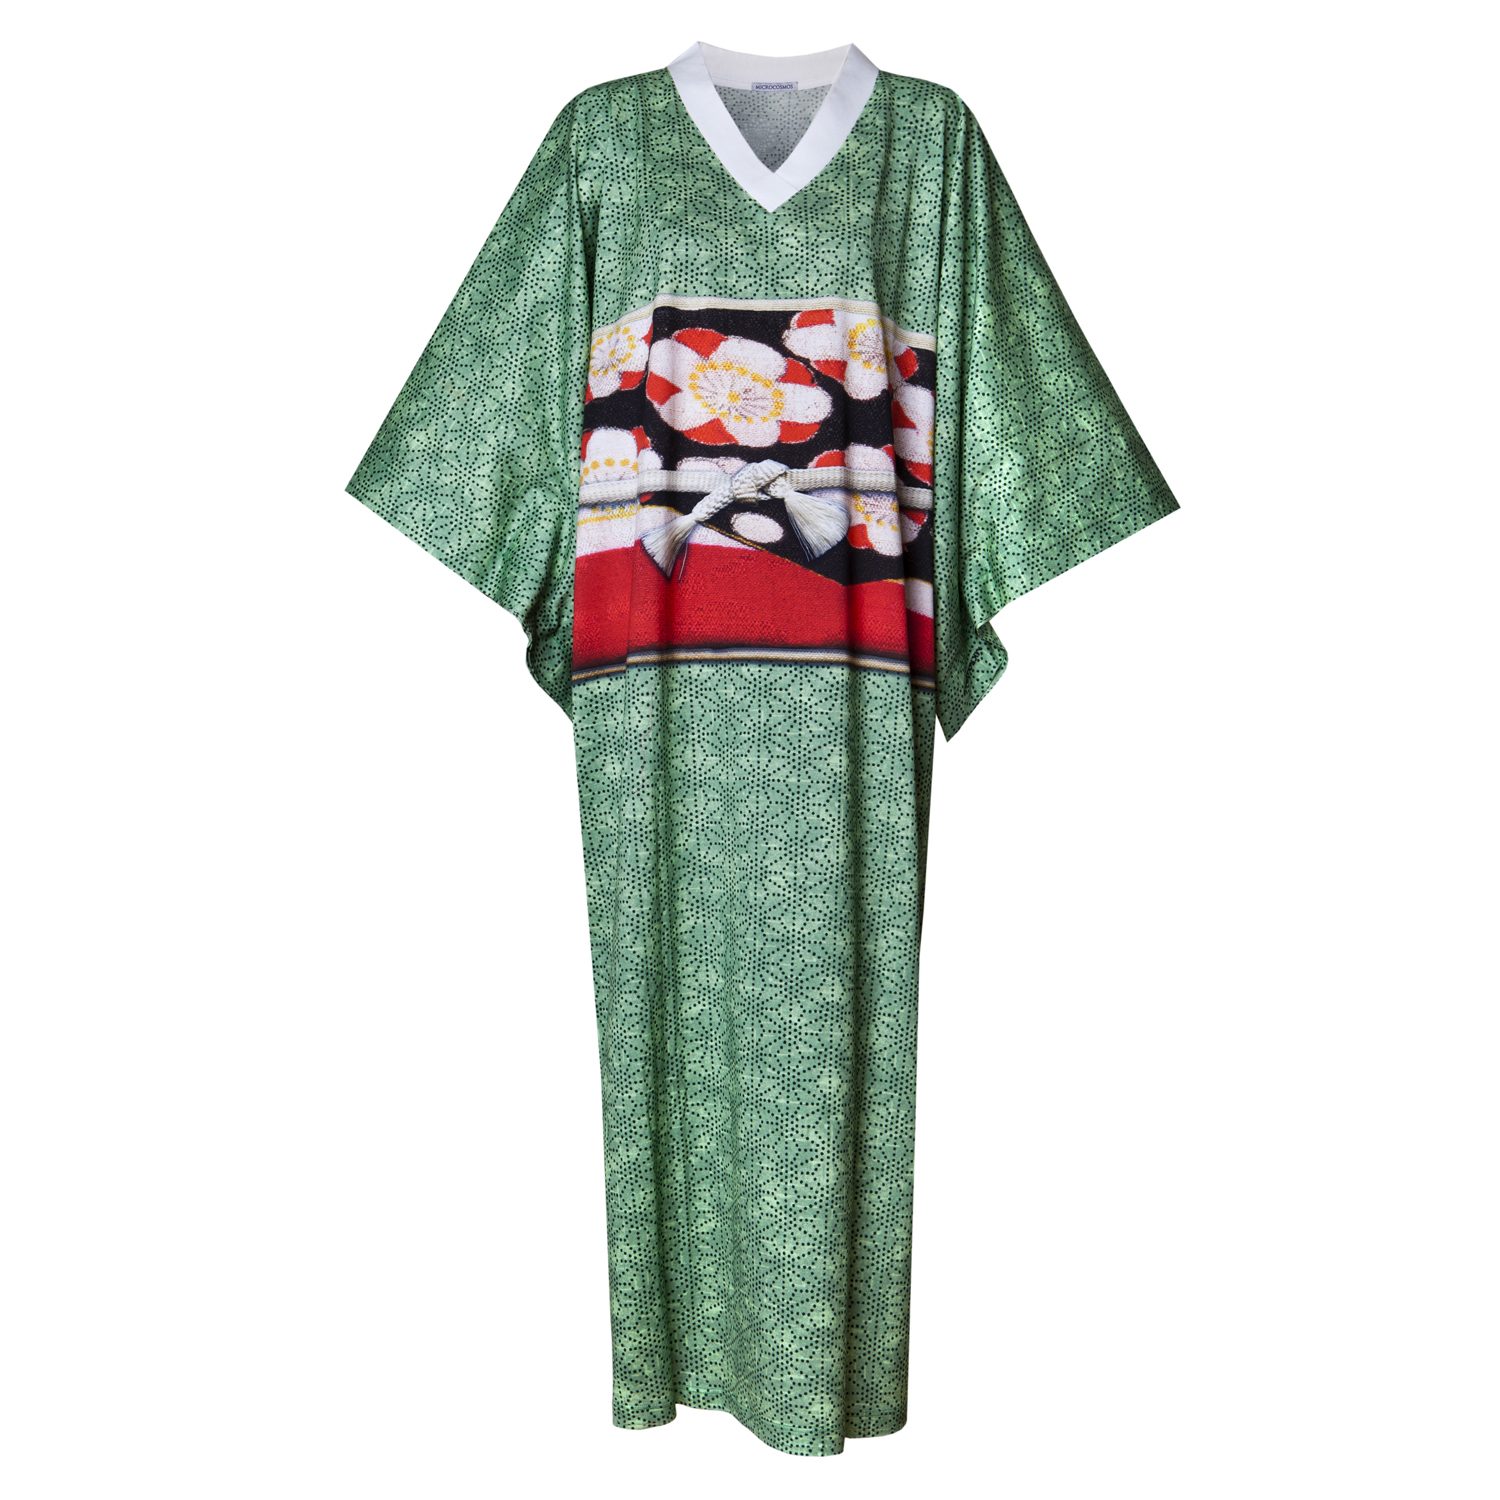 You searched for: green kimono! Etsy is the home to thousands of handmade, vintage, and one-of-a-kind products and gifts related to your search. No matter what you're looking for or where you are in the world, our global marketplace of sellers can help you find unique and affordable options. Let's get started!